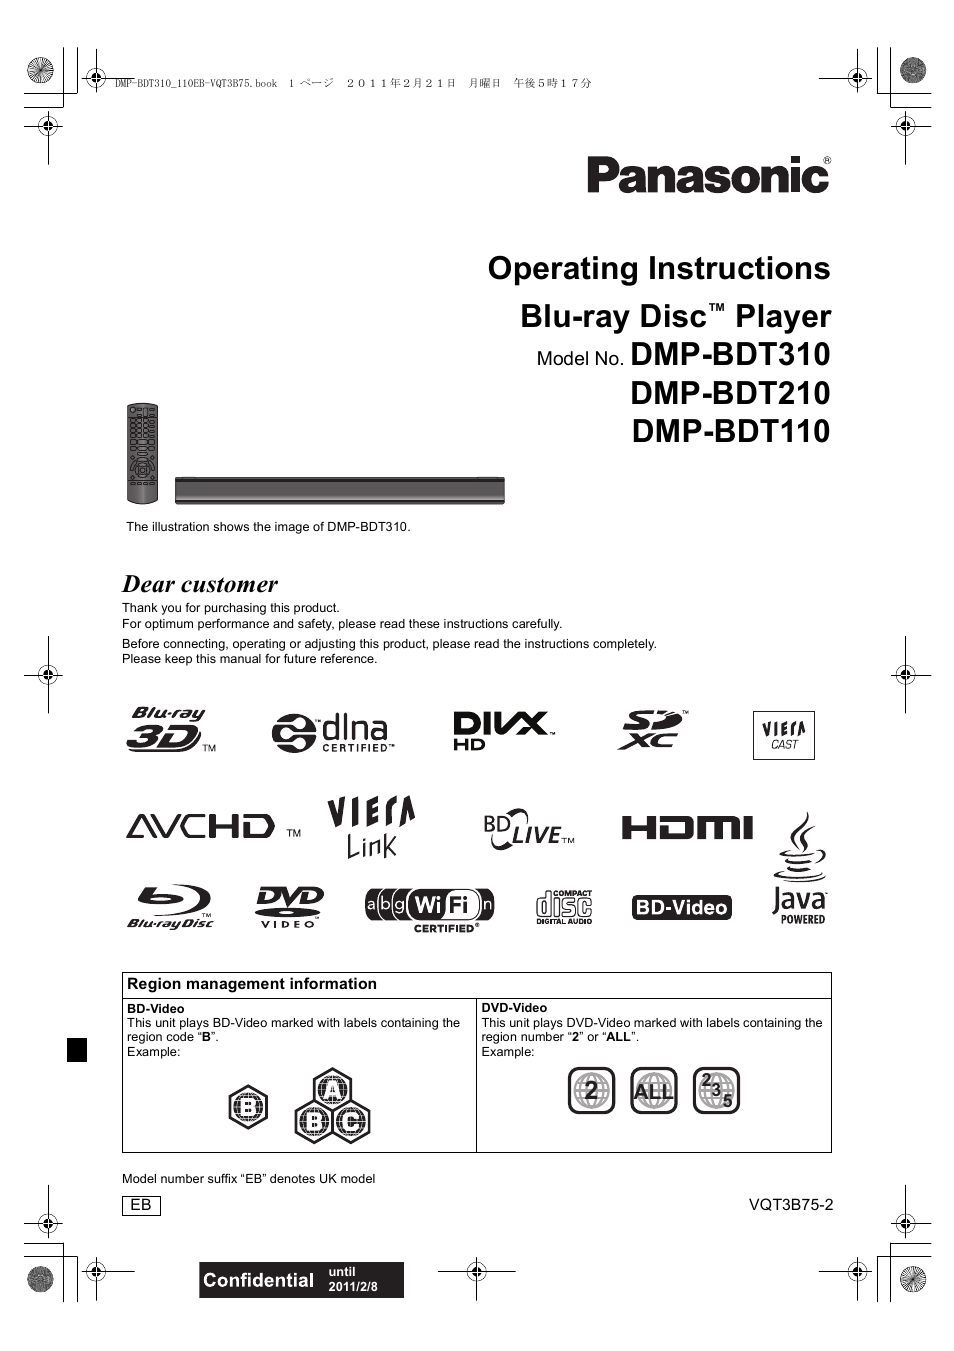 Panasonic DMP-BDT210 User Manual | 44 pages | Also for: DMP-BDT110, DMP- BDT310